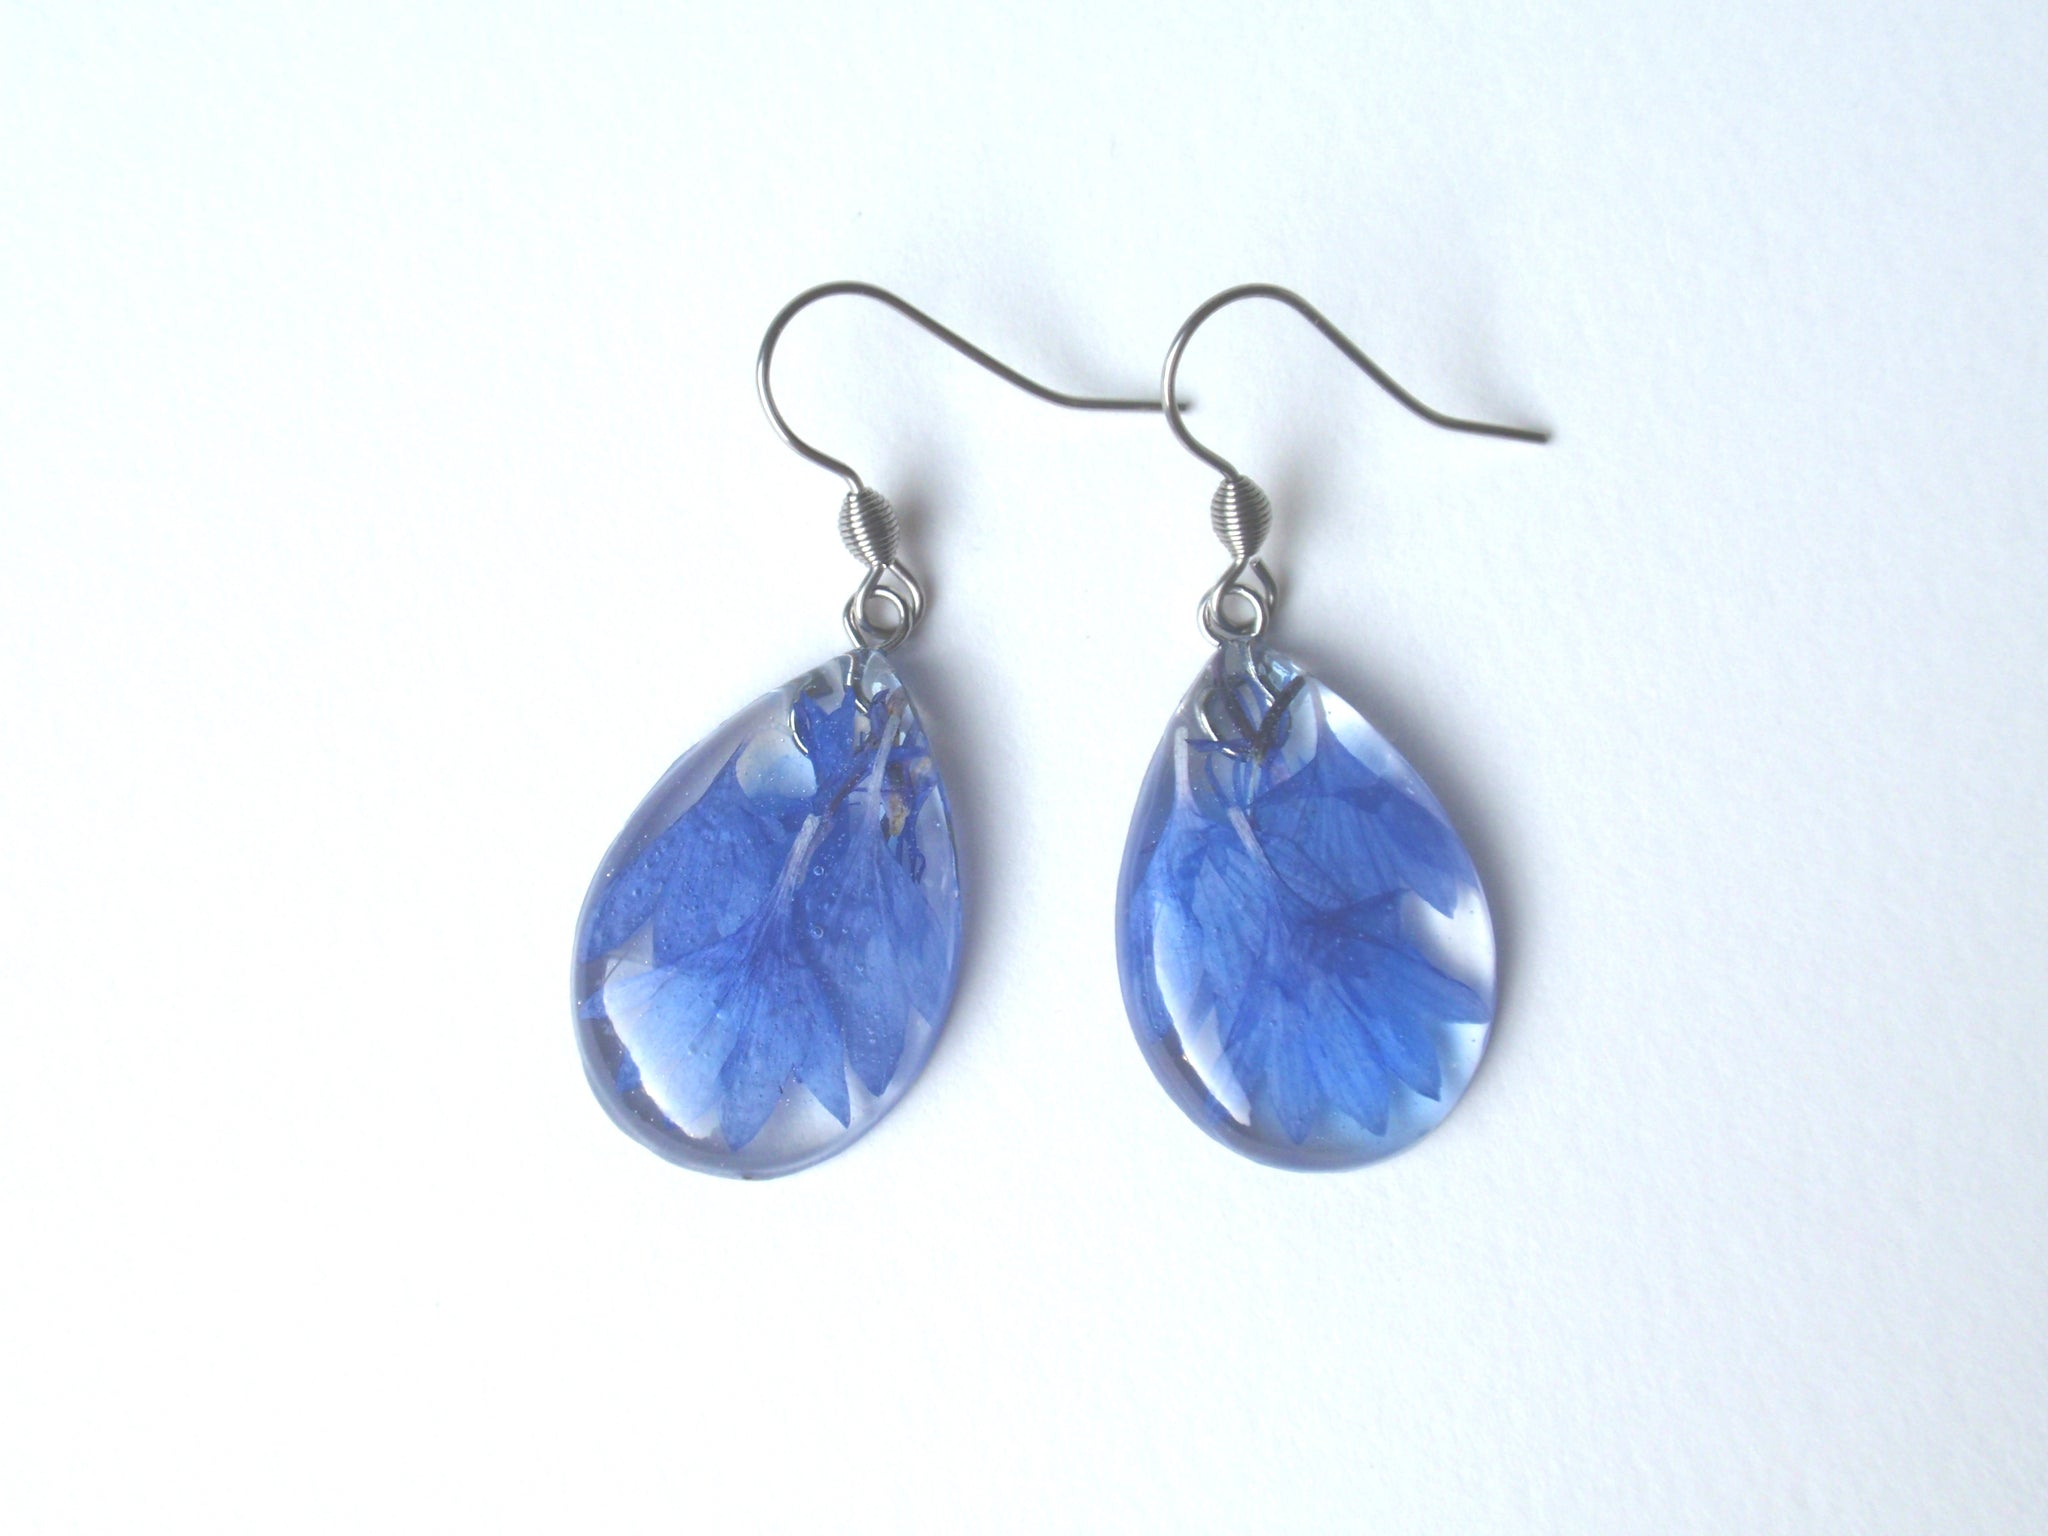 Teardrop earrings with blue Cornflower, bridesmaid jewelry